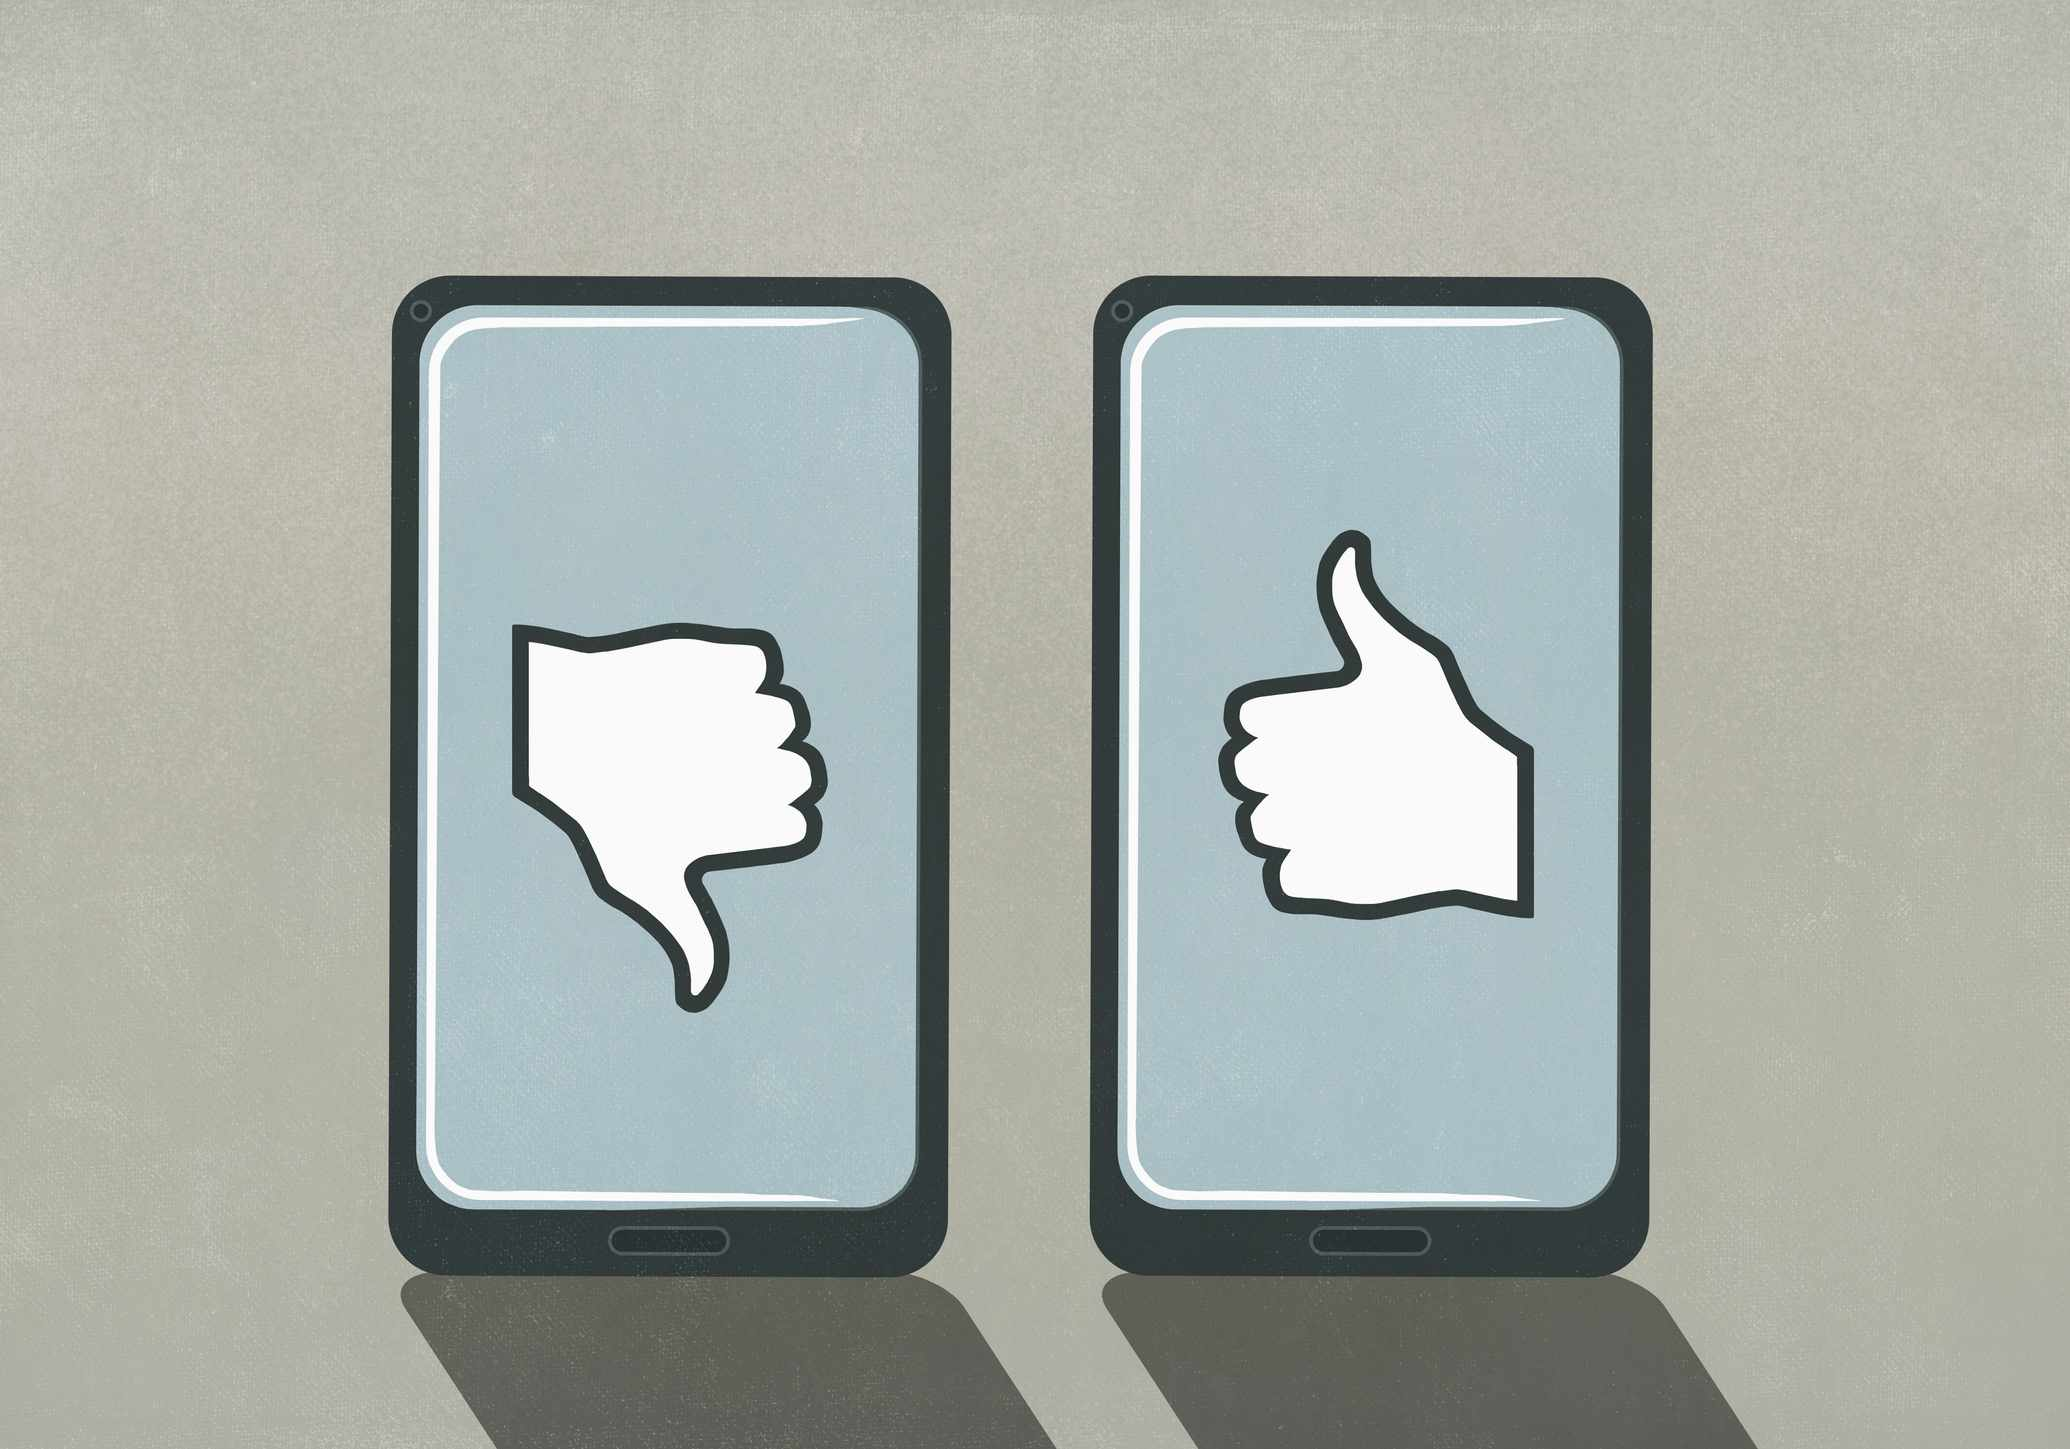 Illustration of two smartphones, one with thumbs up and one with thumbs down displayed on the screens.